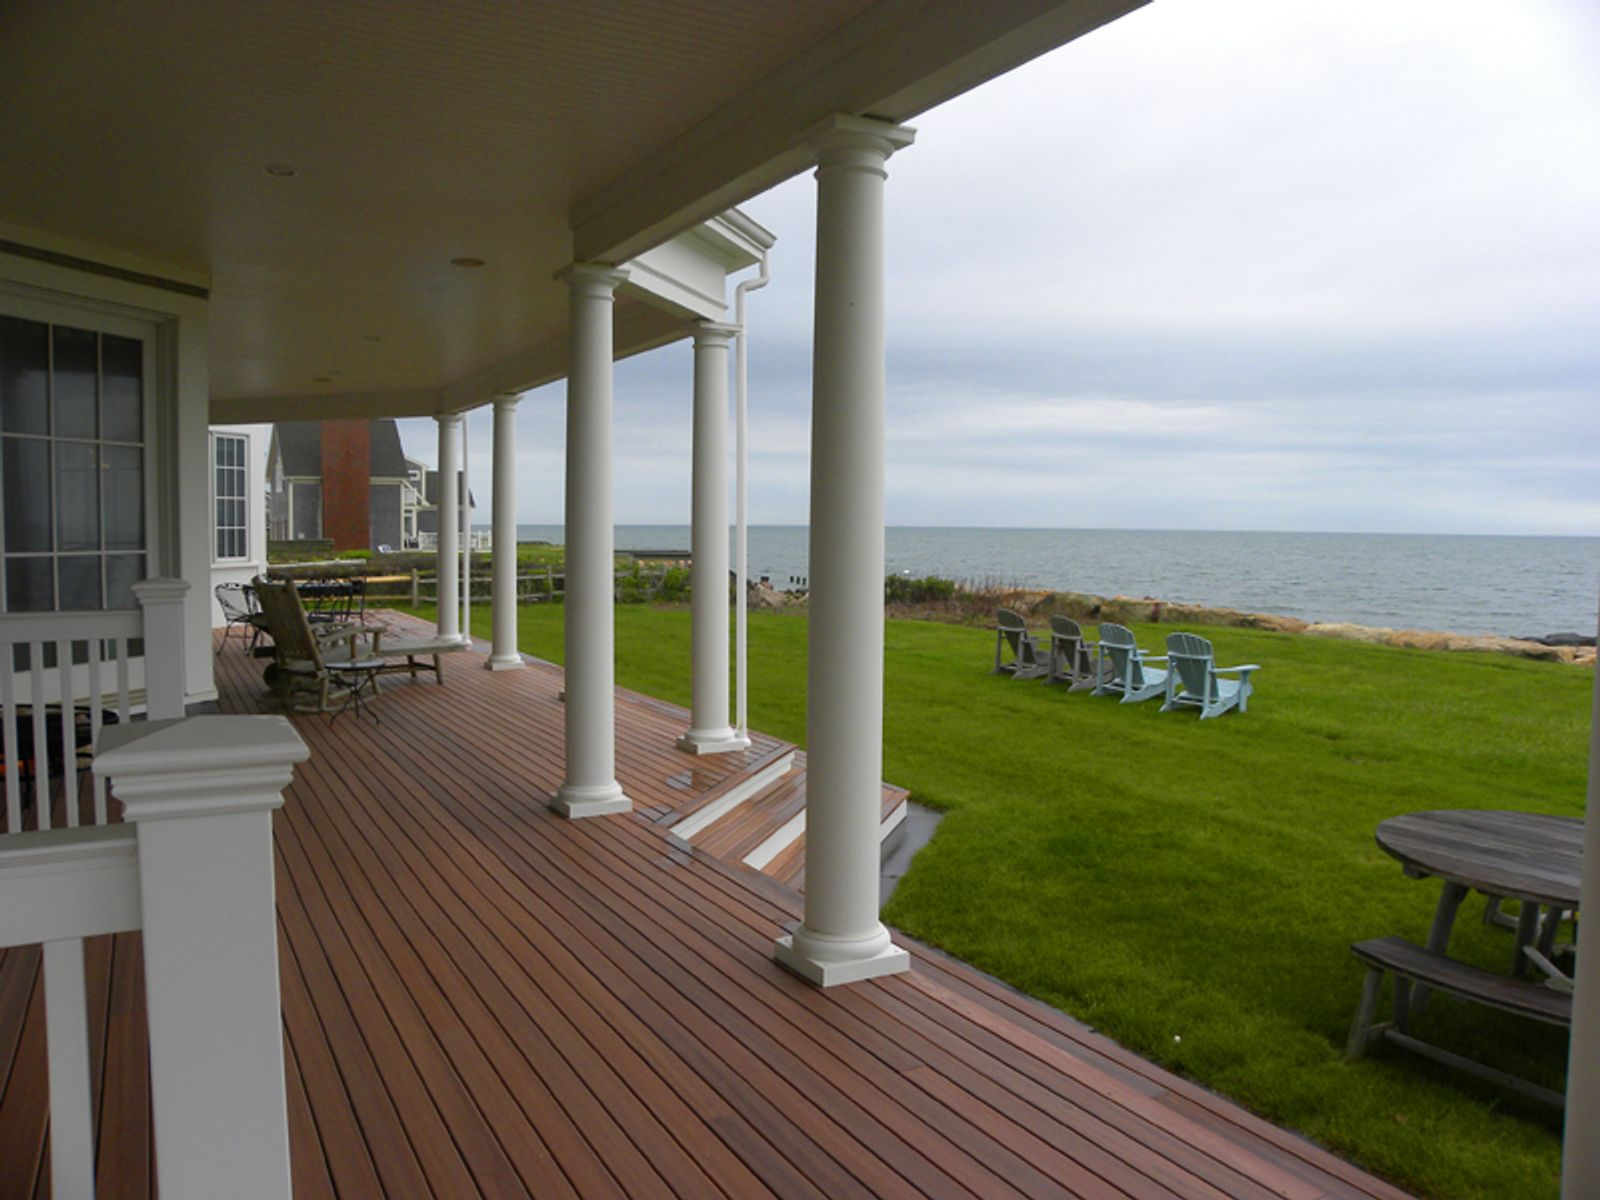 Direct Oceanfront with Sandy Beach, East Falmouth MA Single Family Home - Cape Cod Real Estate